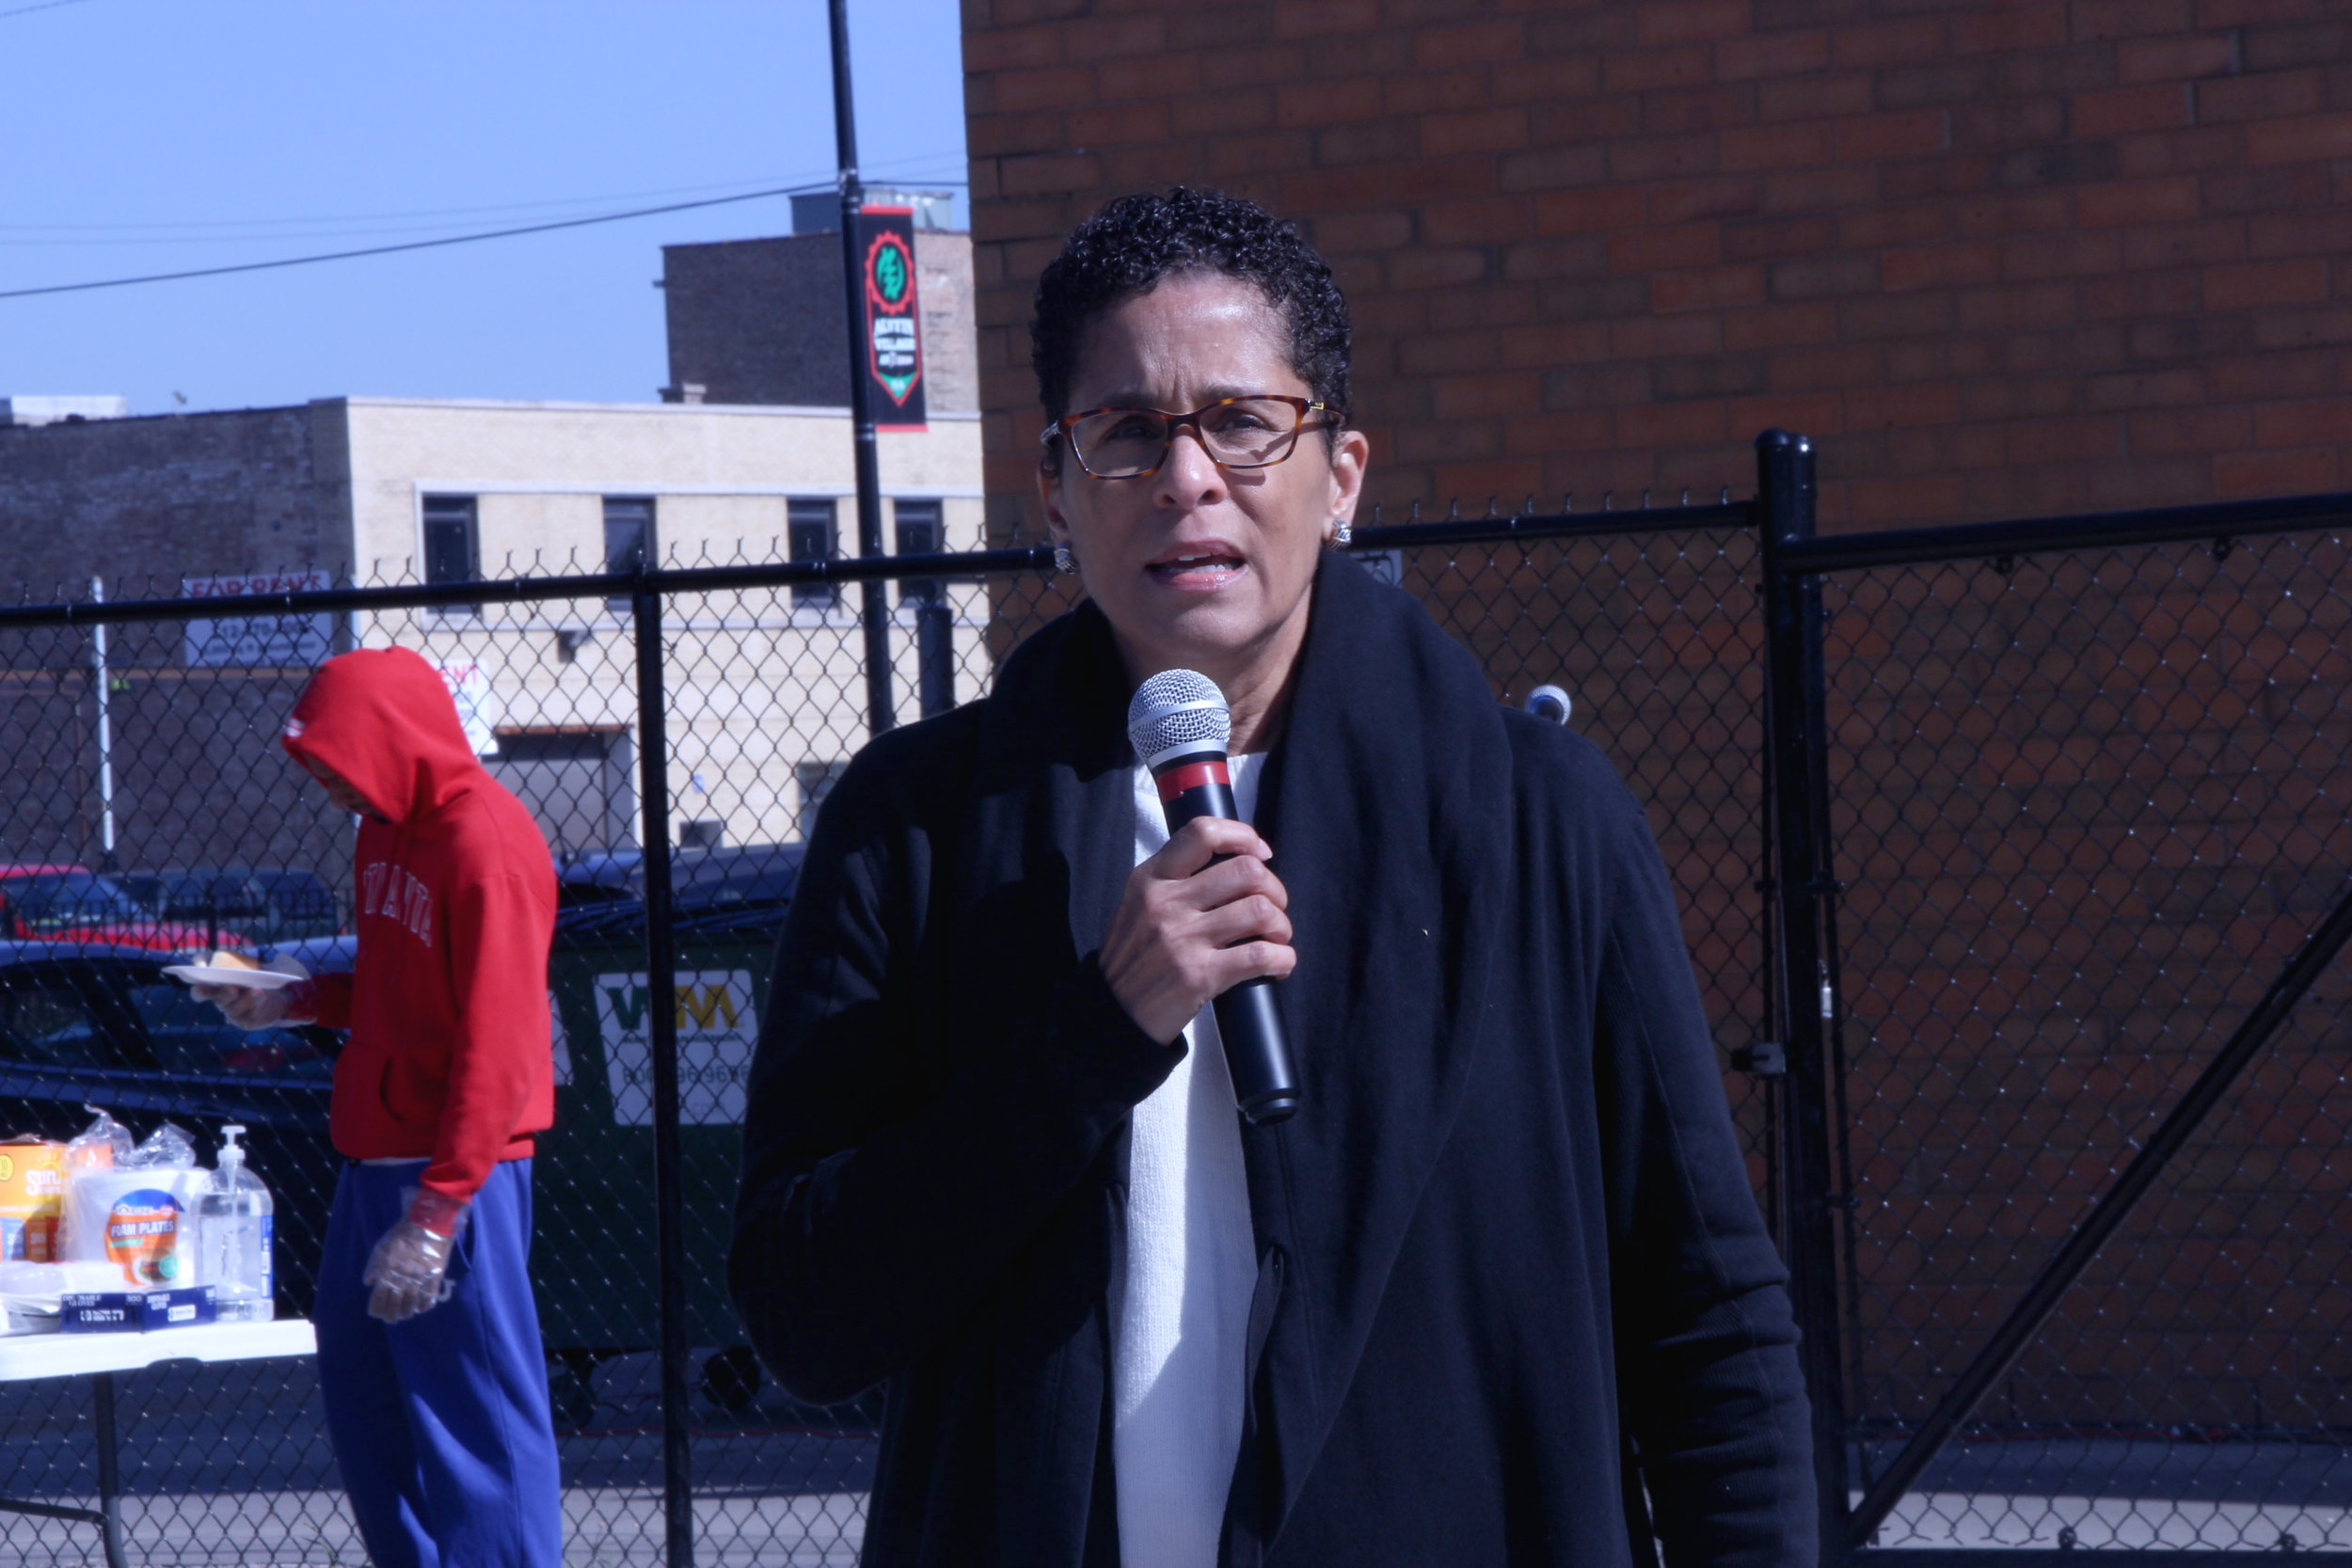 """Commissioner Lisa Morrison-Butler of the Department of Family and Support Services spoke about the importance of community members understanding their rights. """"We are often over policed and under-resourced when it comes to understanding our rights and being able to navigate that mind field when engaging with the police,"""" she said."""